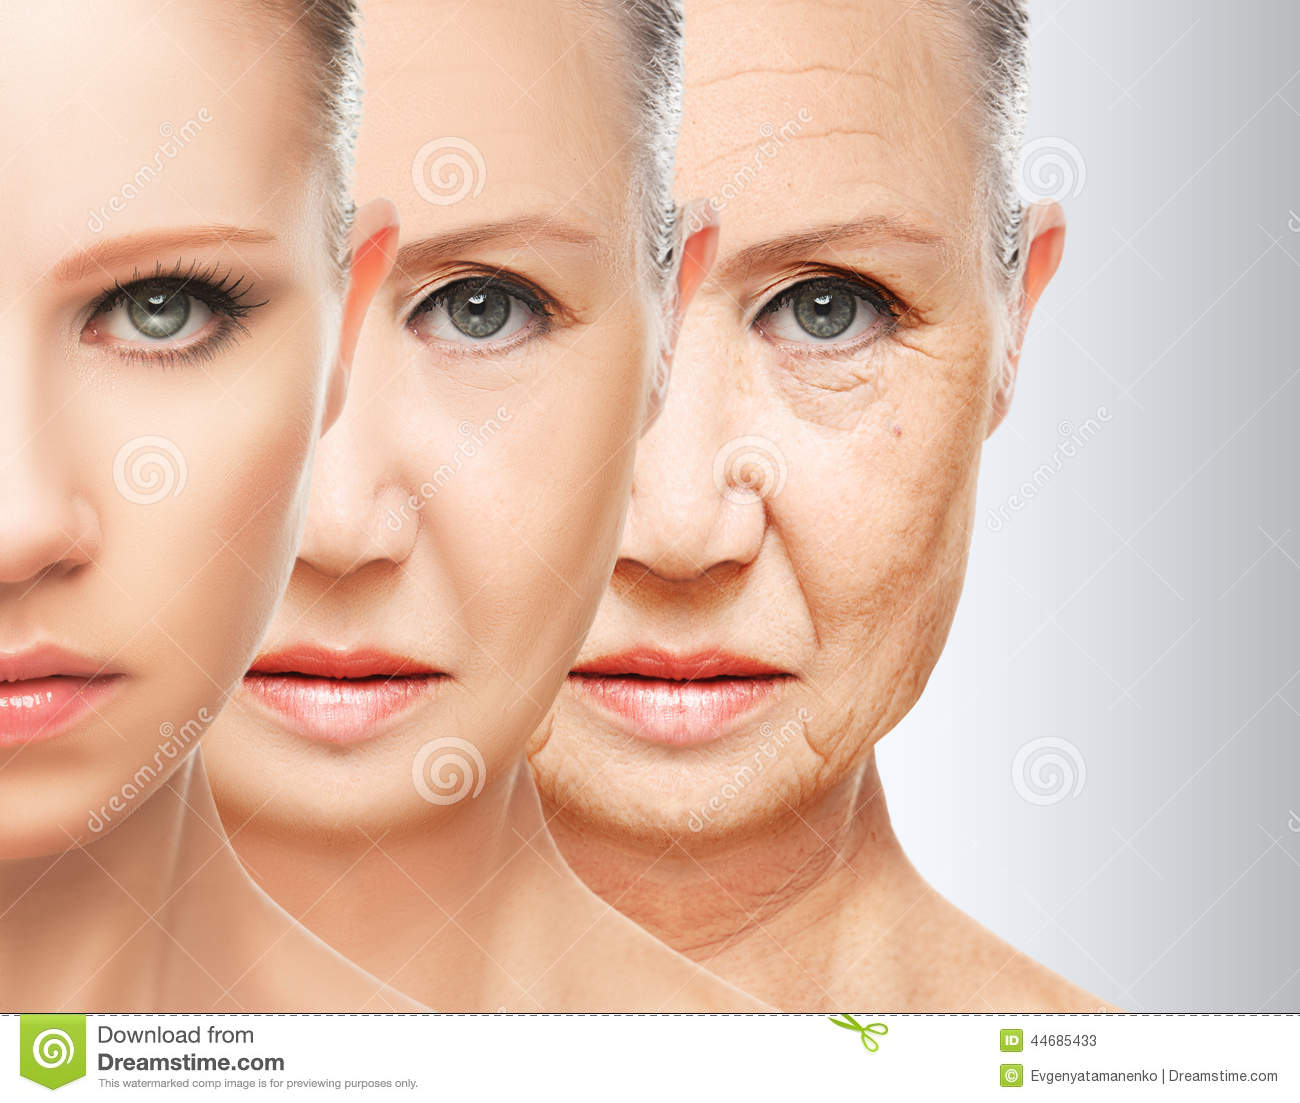 Anti aging beauty : When to start anti aging cream.